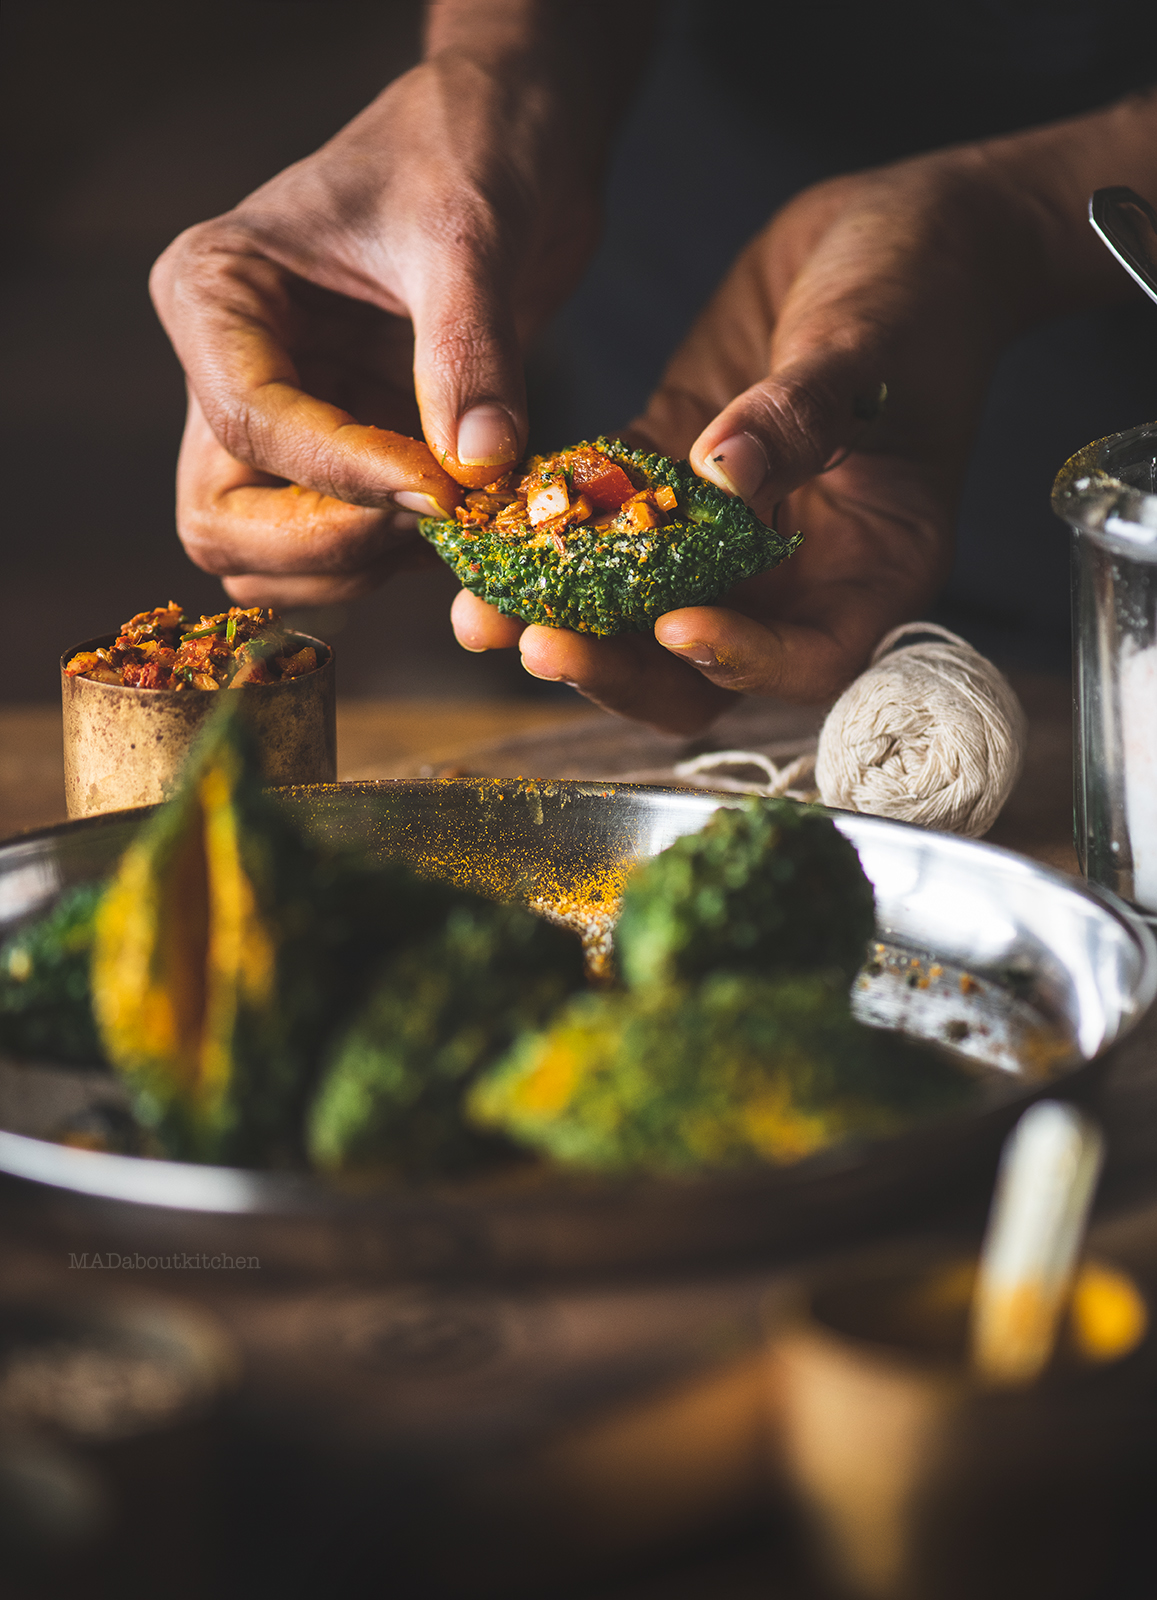 Bharela karela is stuffed bitter guard which is a tasty accompaniment to Dal,roti or rice. It is a deep fried, spicy, punjabi dish made using small gourds